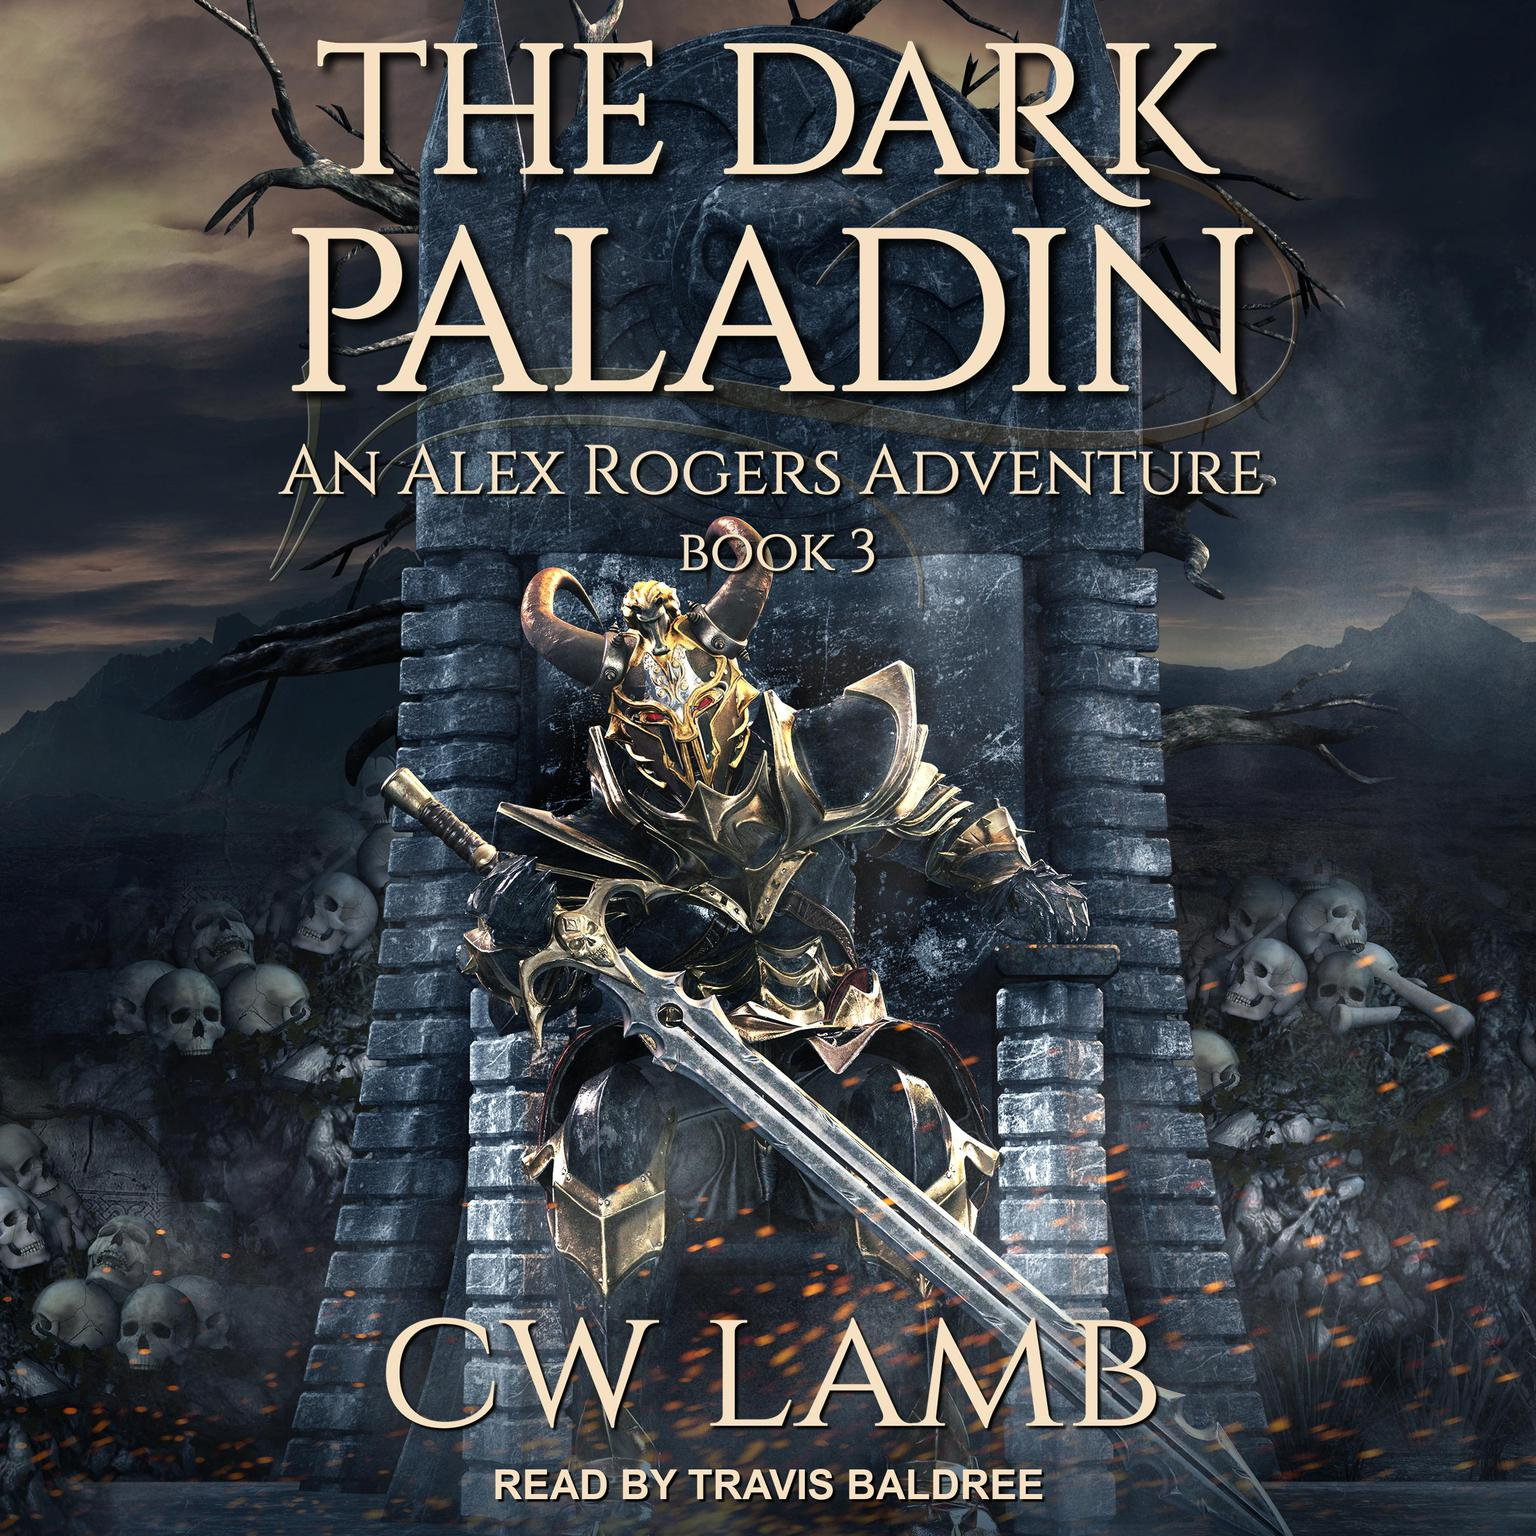 The Dark Paladin: An Alex Rogers Adventure Audiobook, by Charles Lamb